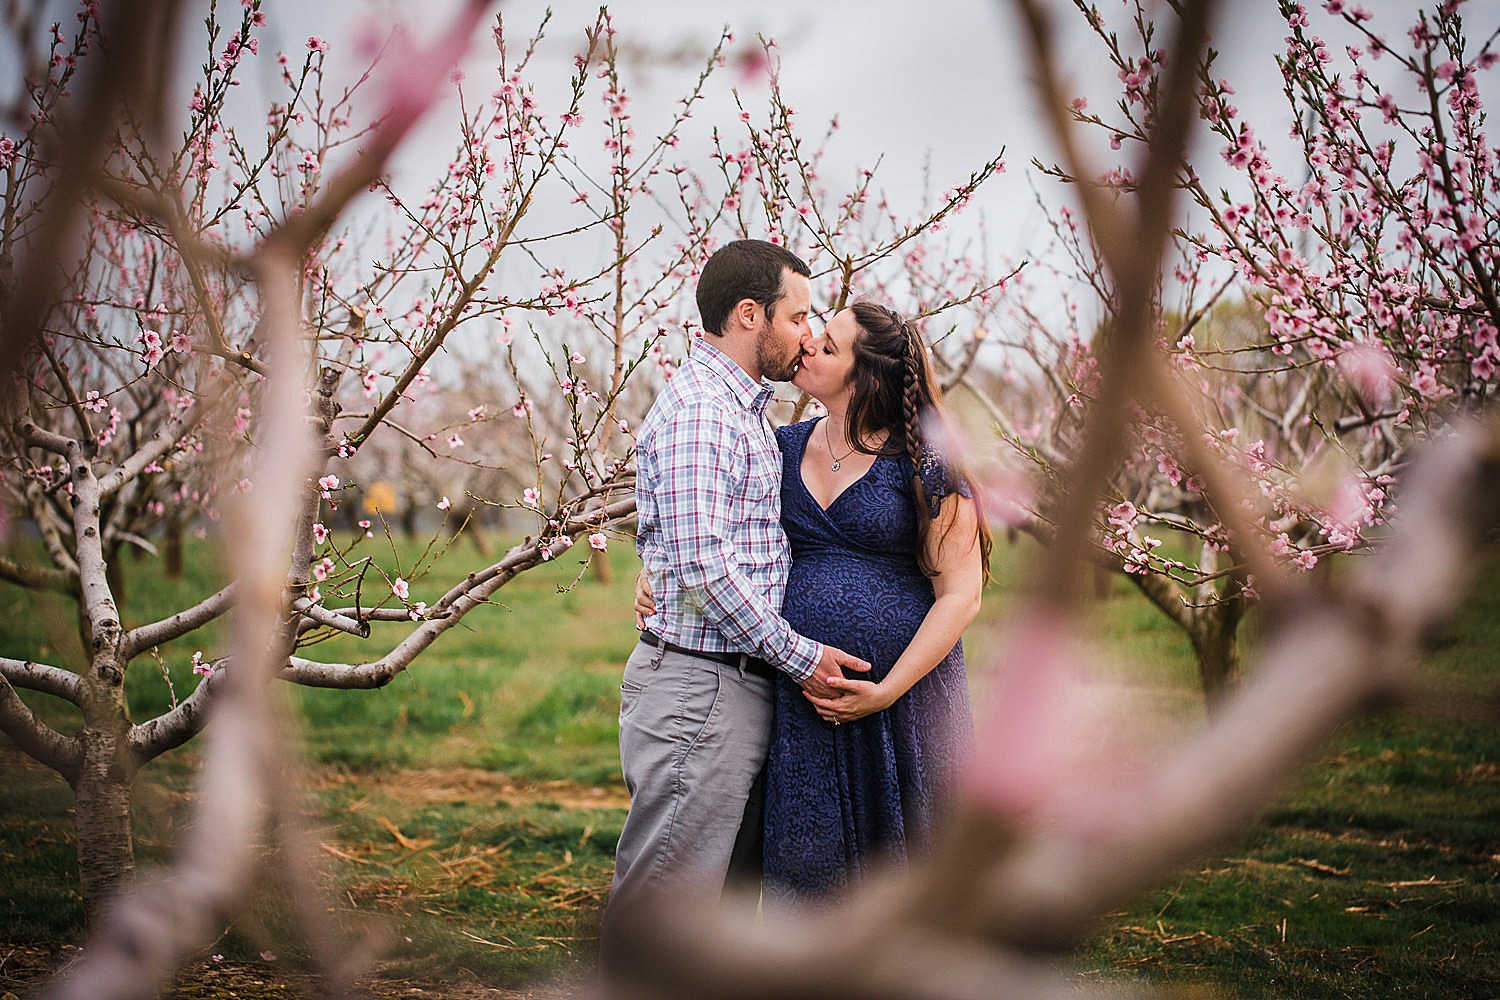 Photo of a pregnant woman in a blue lace dress kissing her husband in an orchard of flowers.